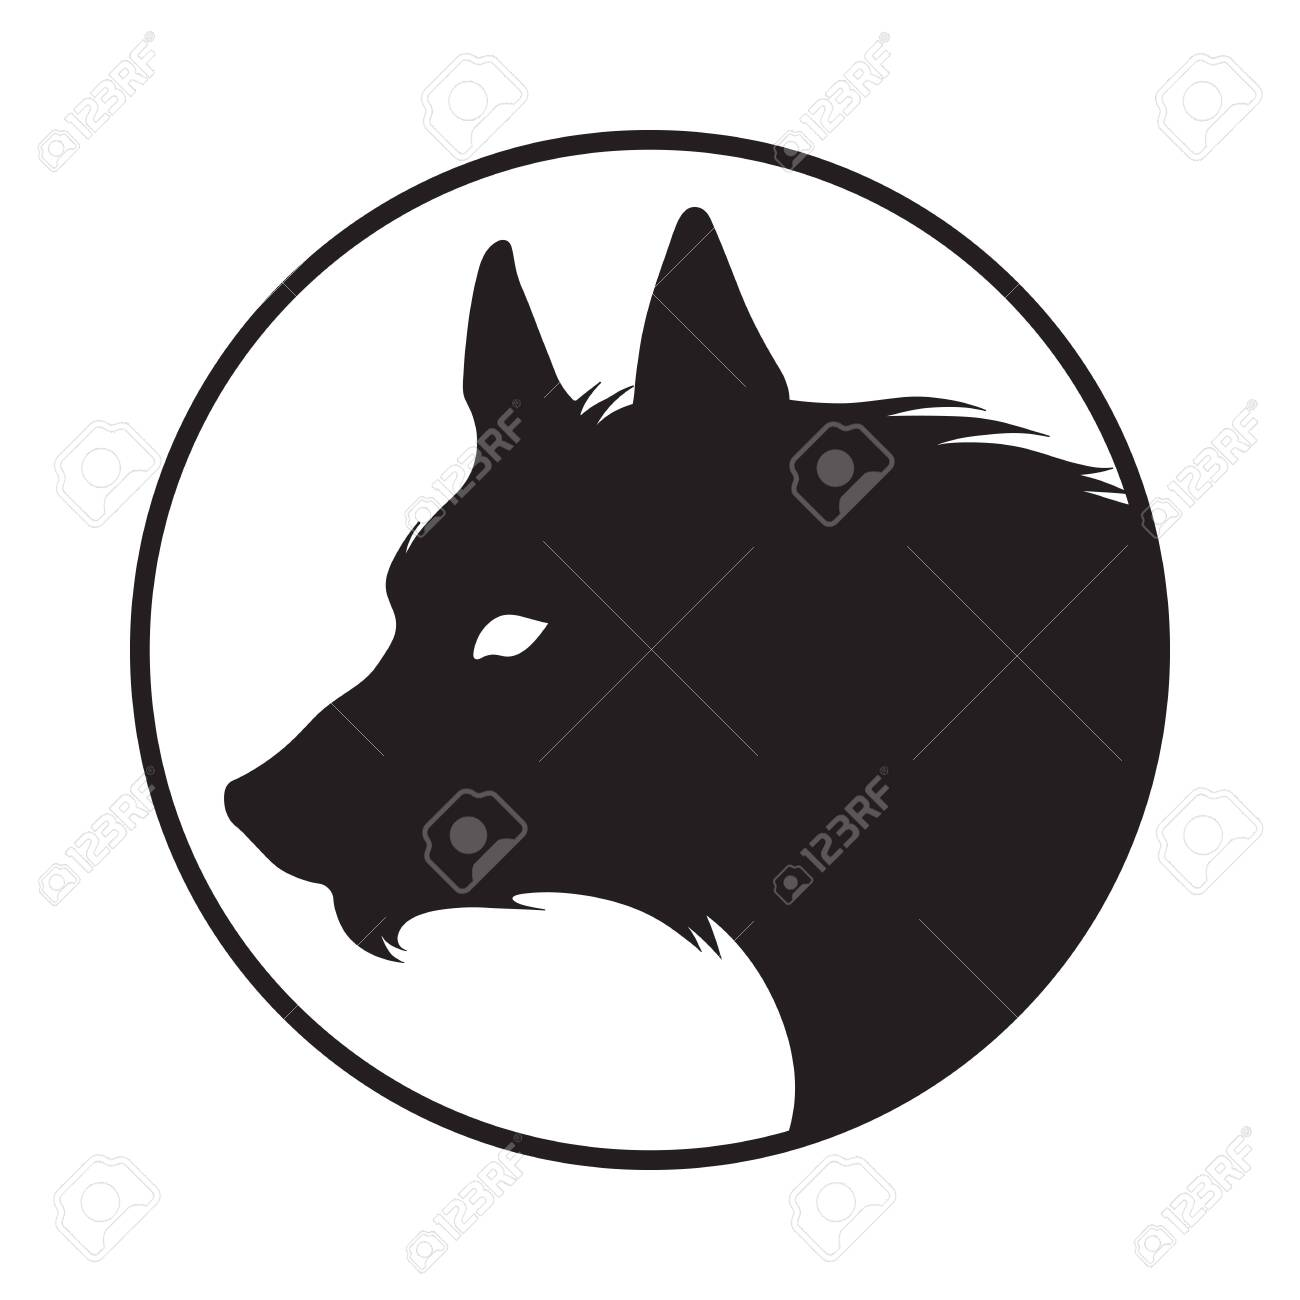 Silhouette of the wolf isolated. Logo, sticker, print or tattoo design vector illustration. Pagan totem, wiccan familiar spirit art. - 141785005